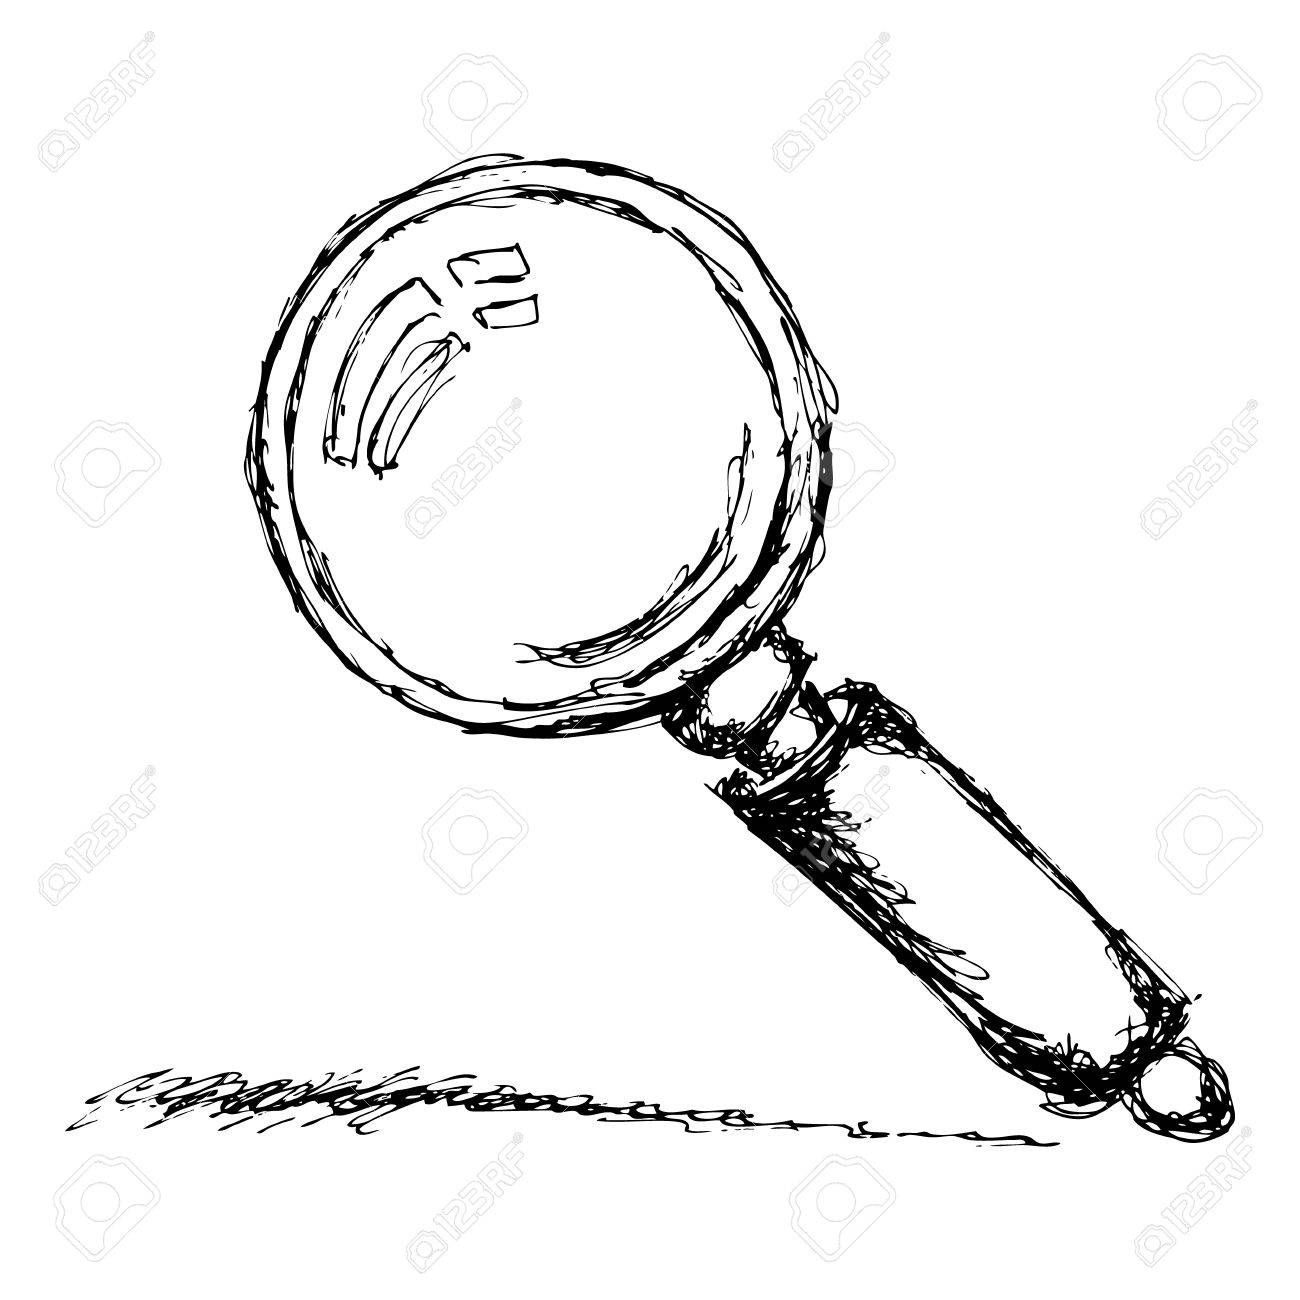 1300x1300 Hand Drawn Sketch Of A Magnifying Glass Royalty Free Cliparts